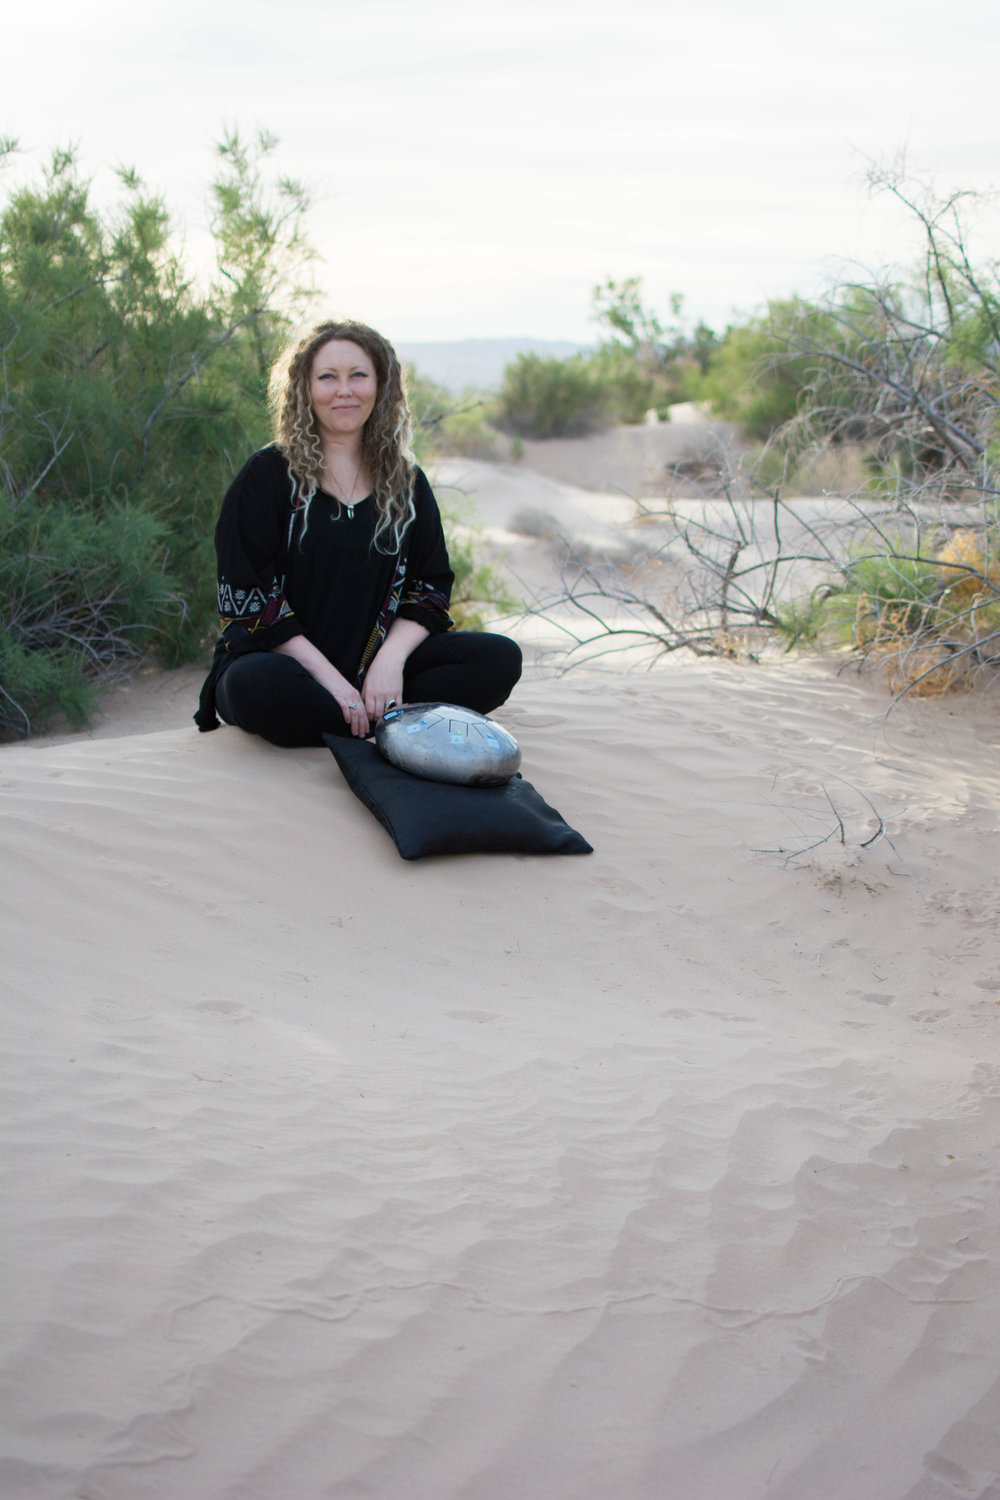 Kai Elliot sitting on a desert sand dune indian style.  She's wearing all black and has blonde and brown curly hair.  There are desert shrubs around her and ripples in the sand.  In front of her is a silver tank drum.